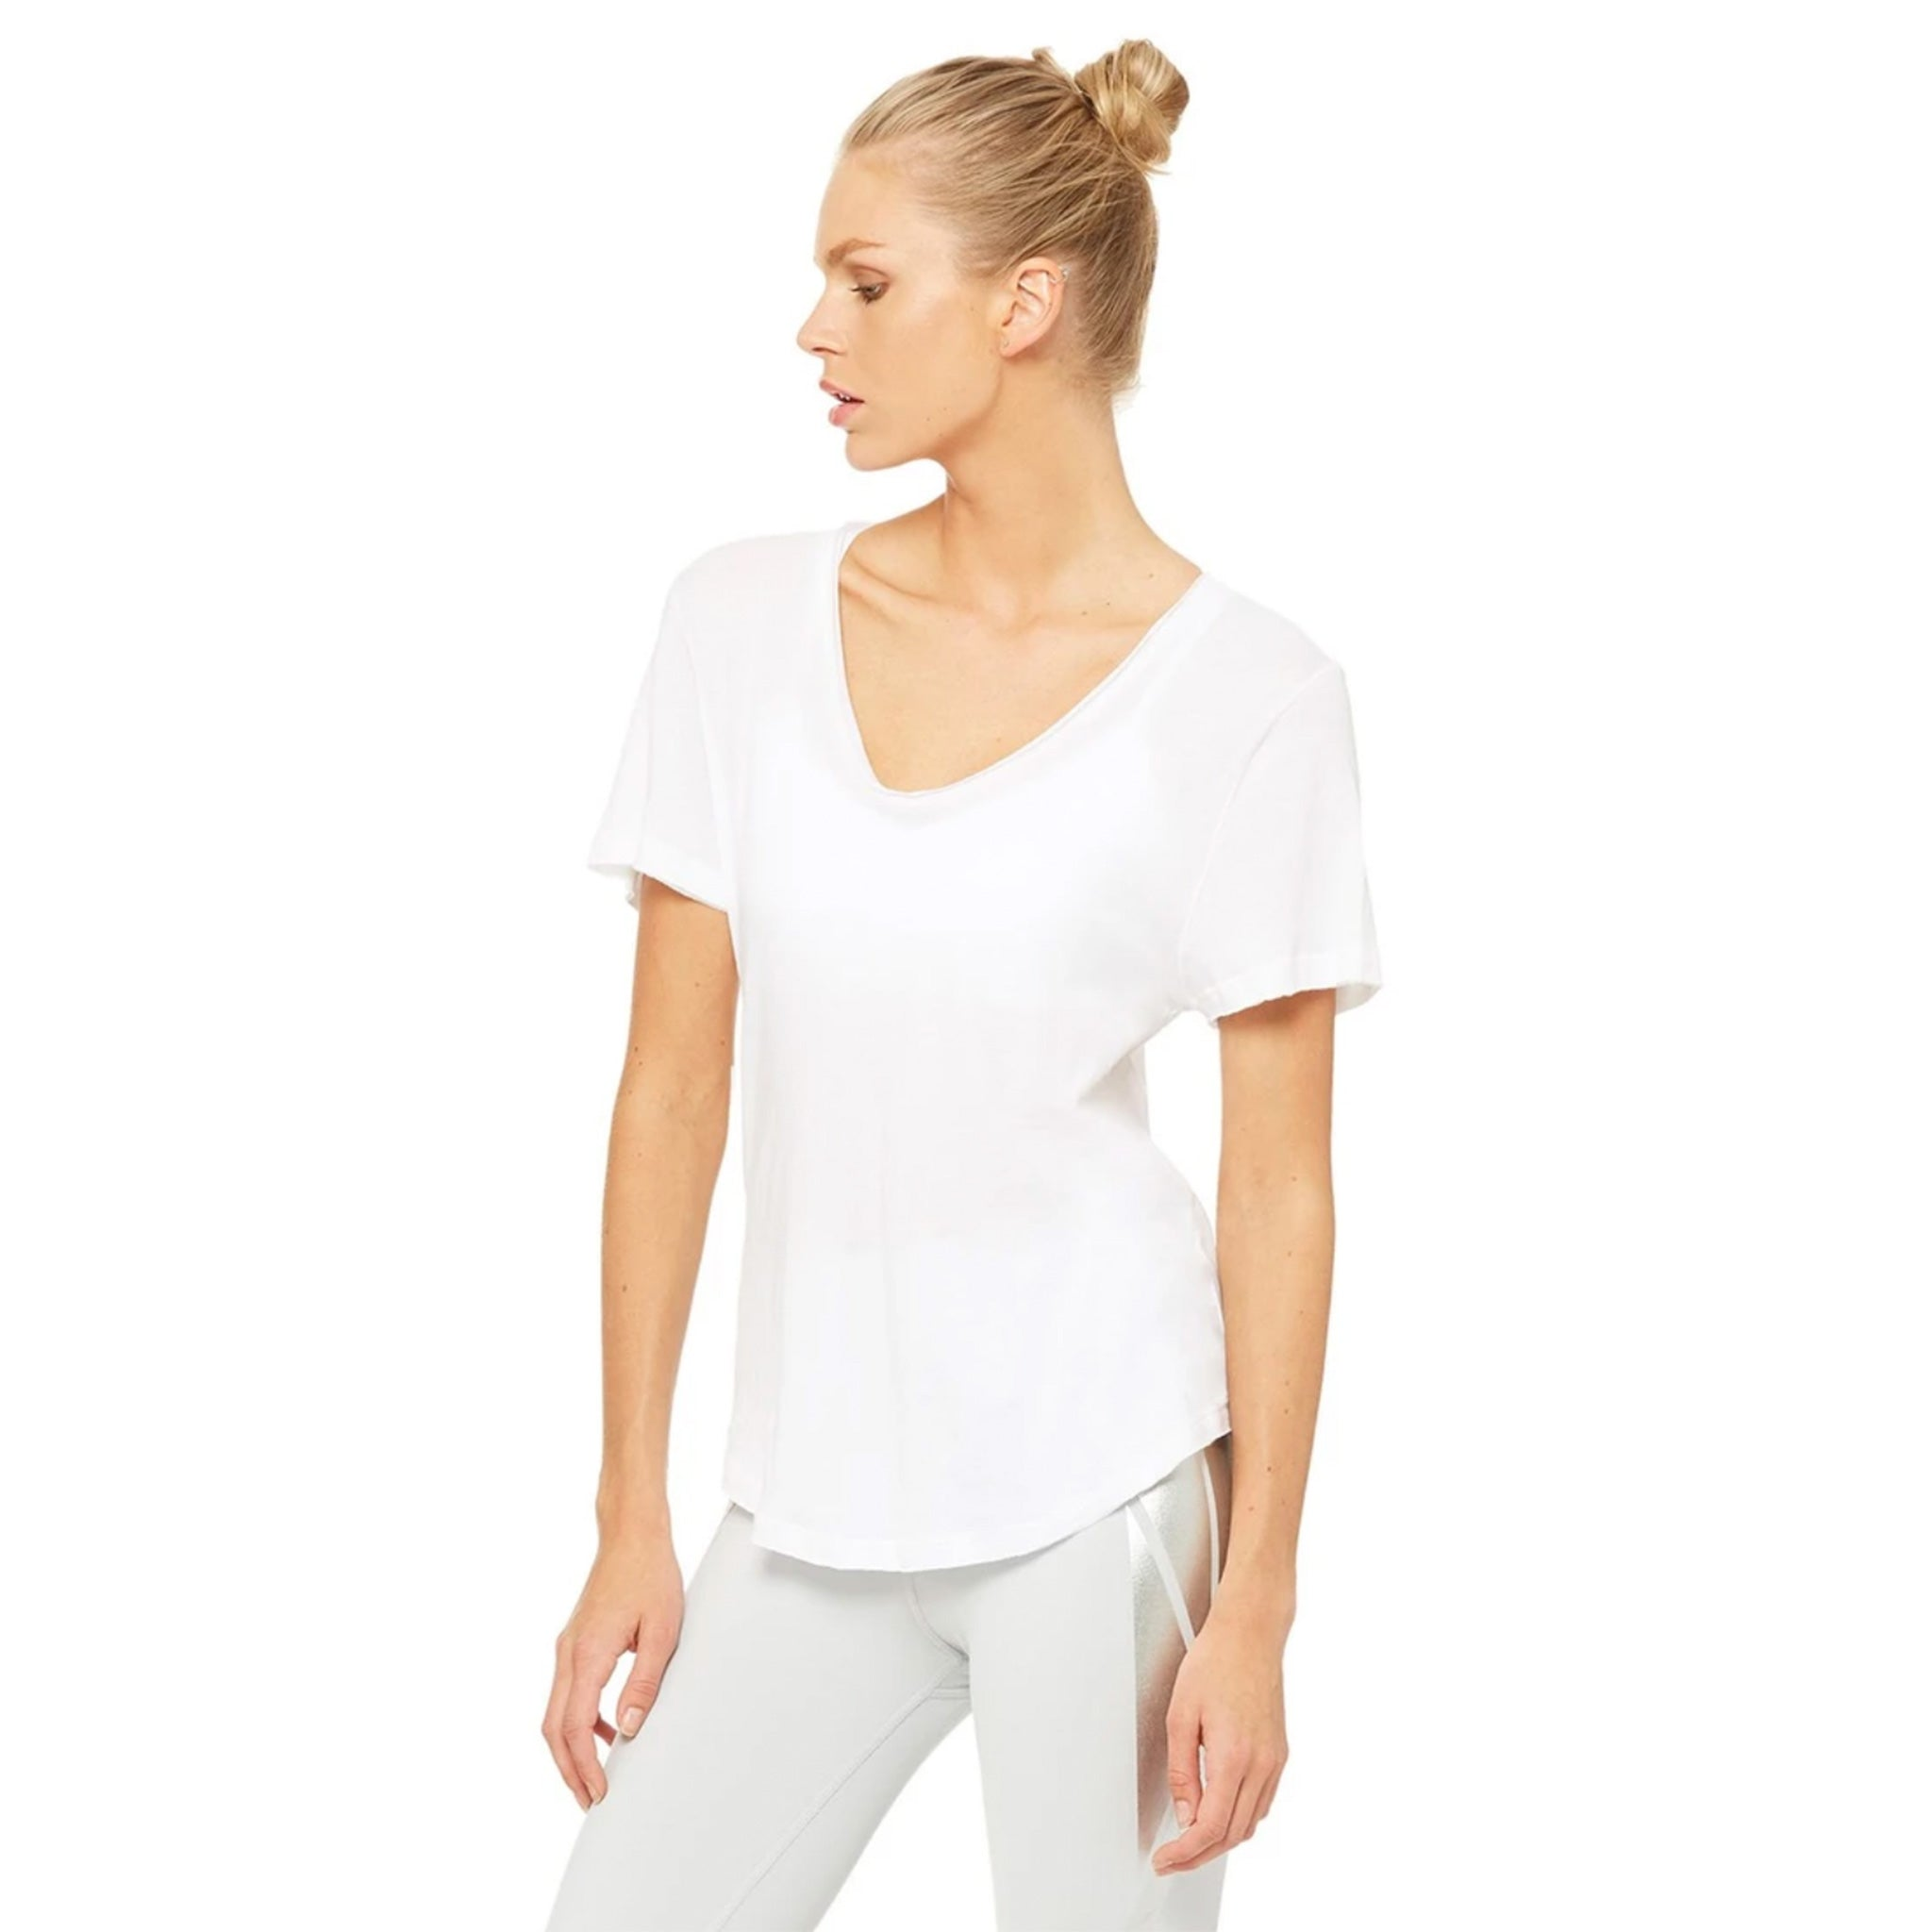 Alo Yoga Playa Tee Shirt in White side view